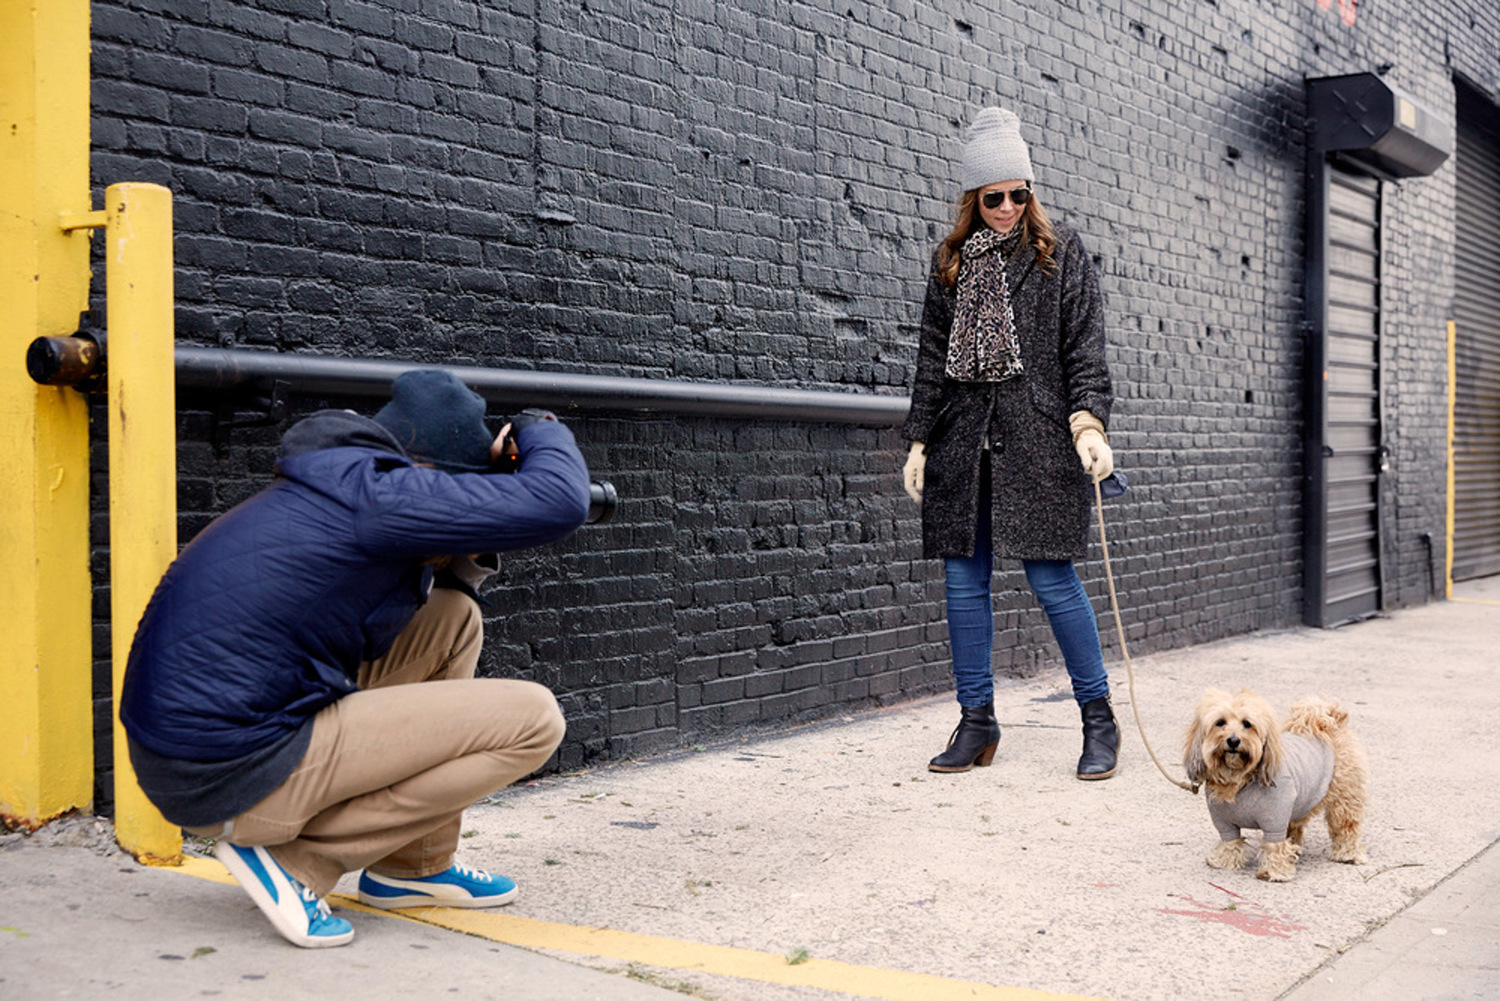 A Day in the Life of a Dog Fashion Entrepreneur